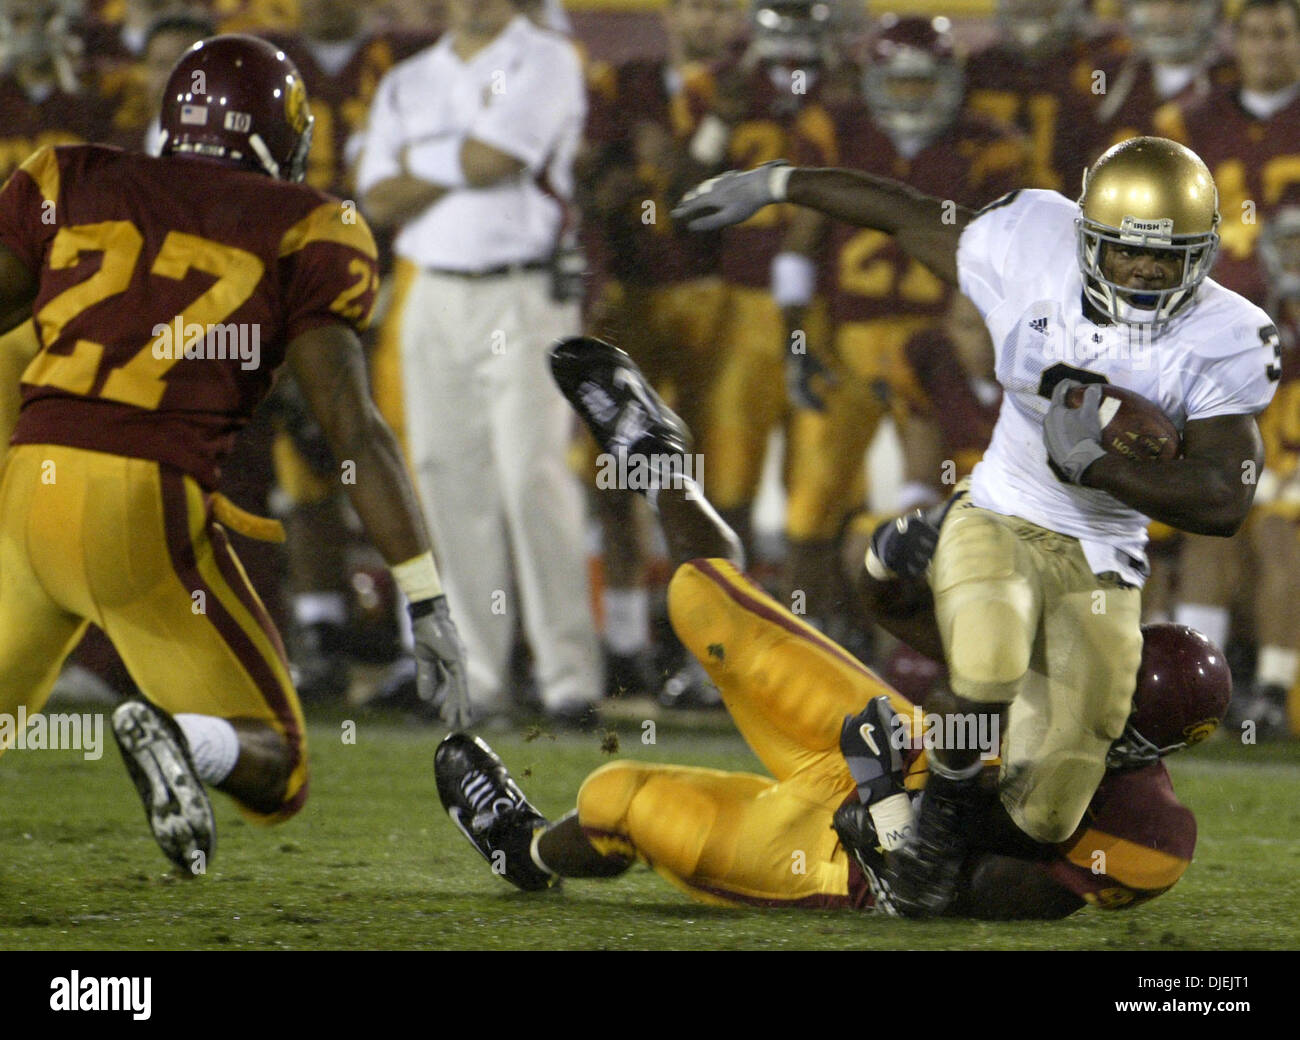 Nov 27, 2004; Los Angeles, CA, USA; USC Trojans defeat Notre Dame Fighting Irish 41 to 10 during their game played at the Los Angeles Memorial  Coliseum today. - Stock Image